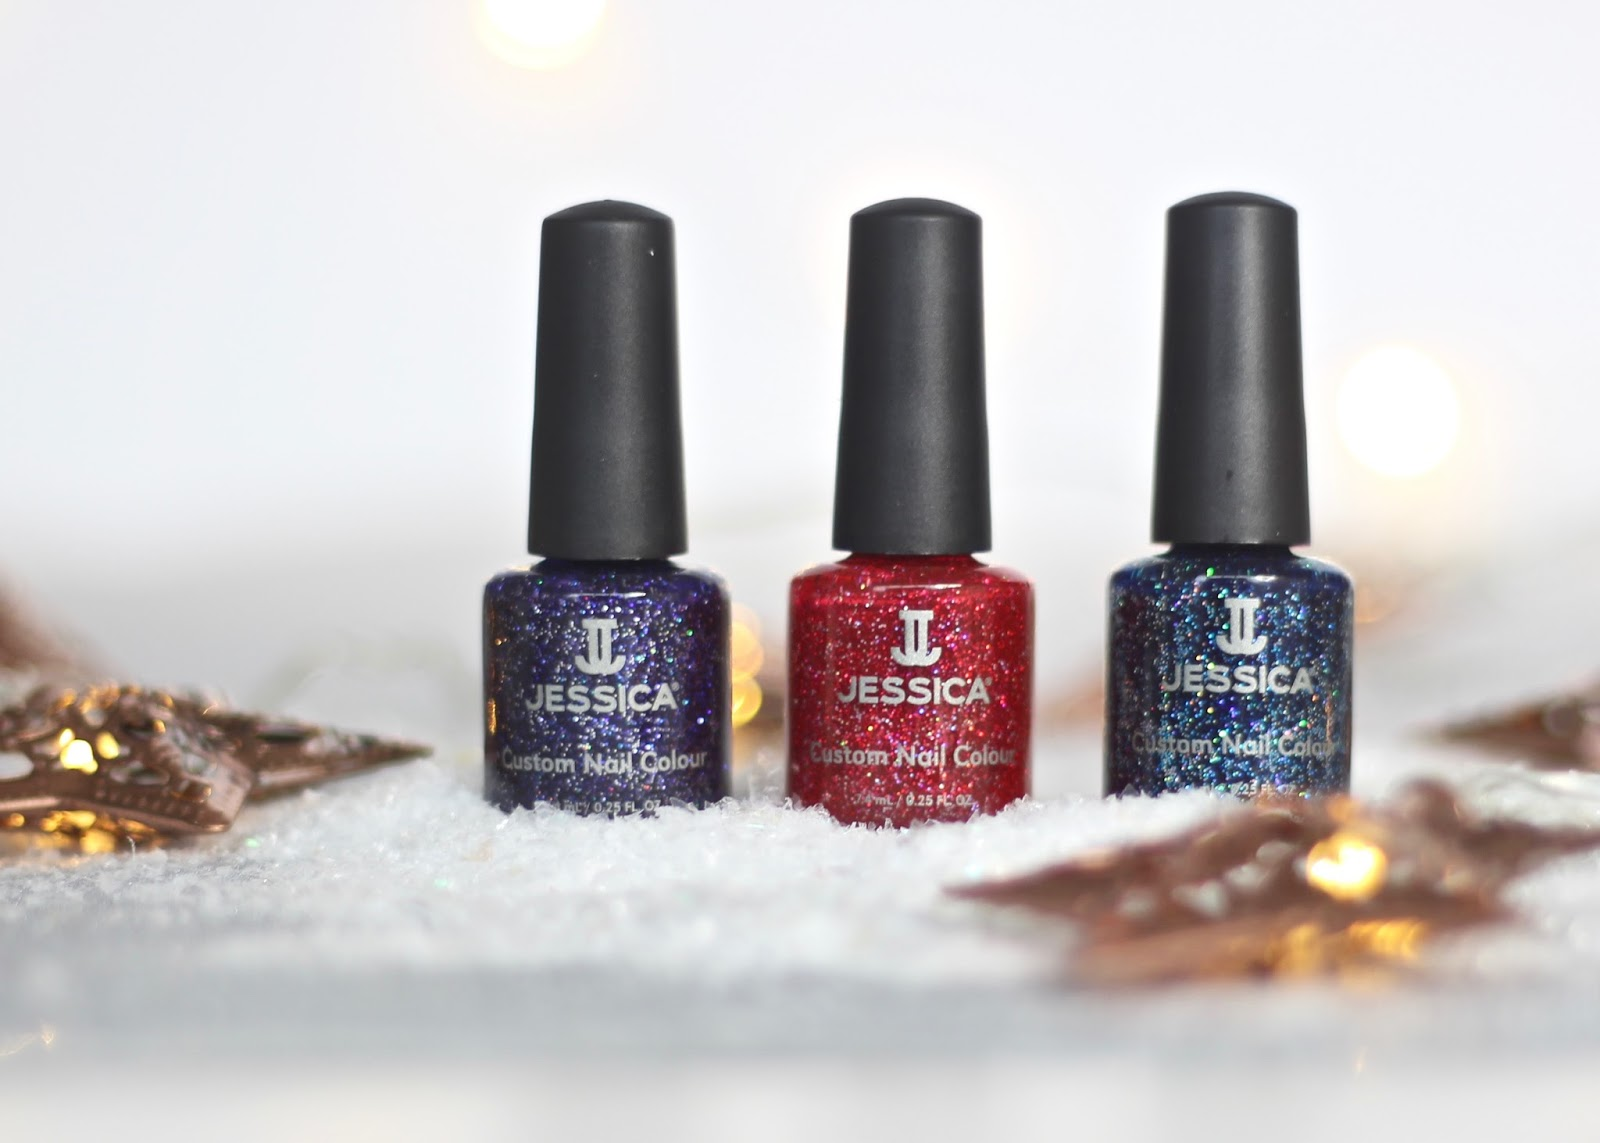 Christmas gift guides 2016 - Nail polish gift sets | flutter and sparkle